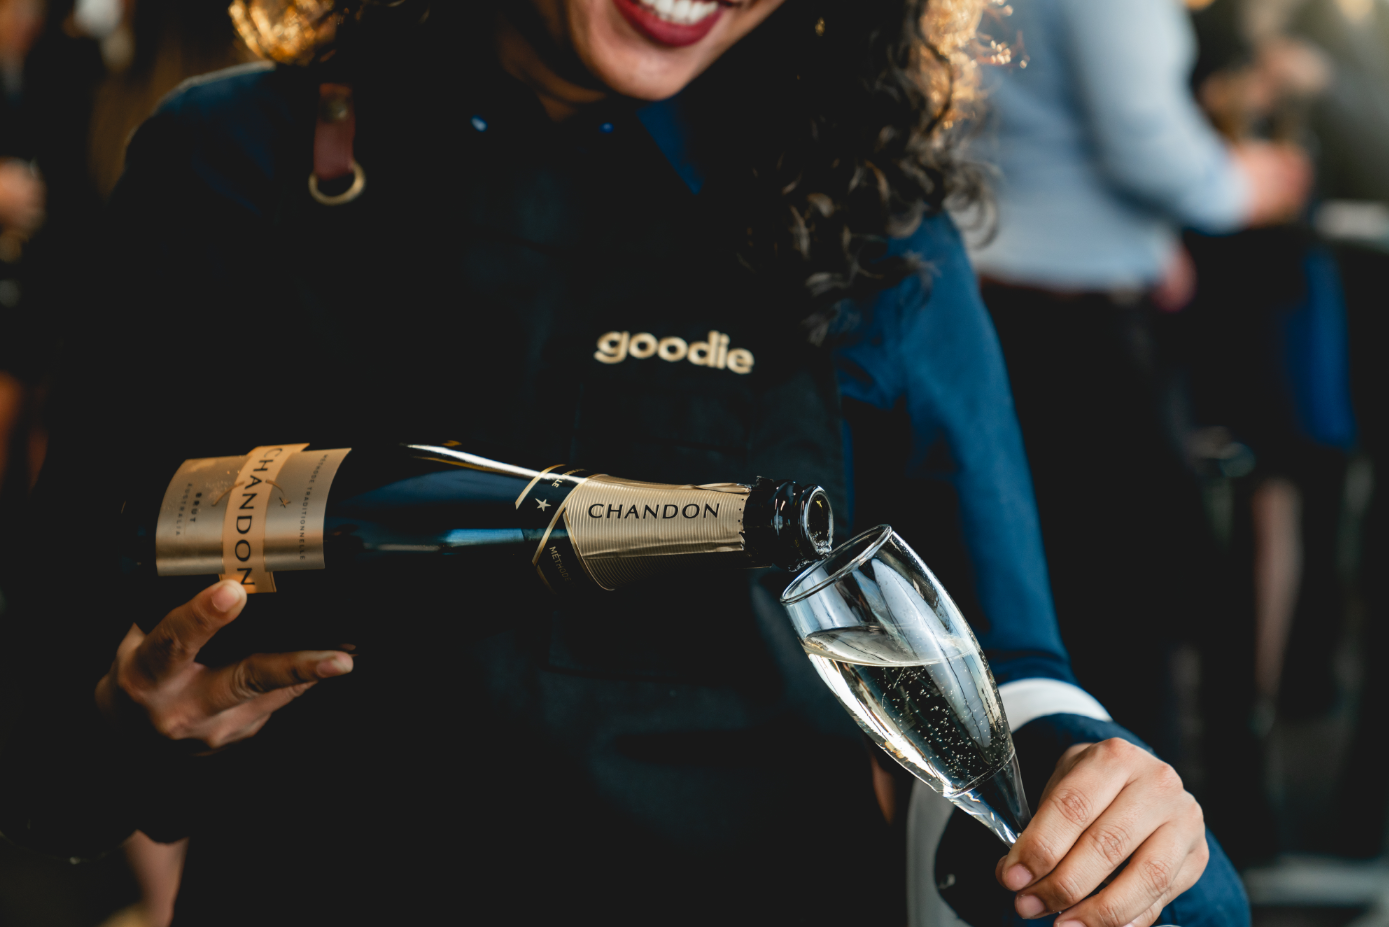 A smiling woman pours a glass of champagne